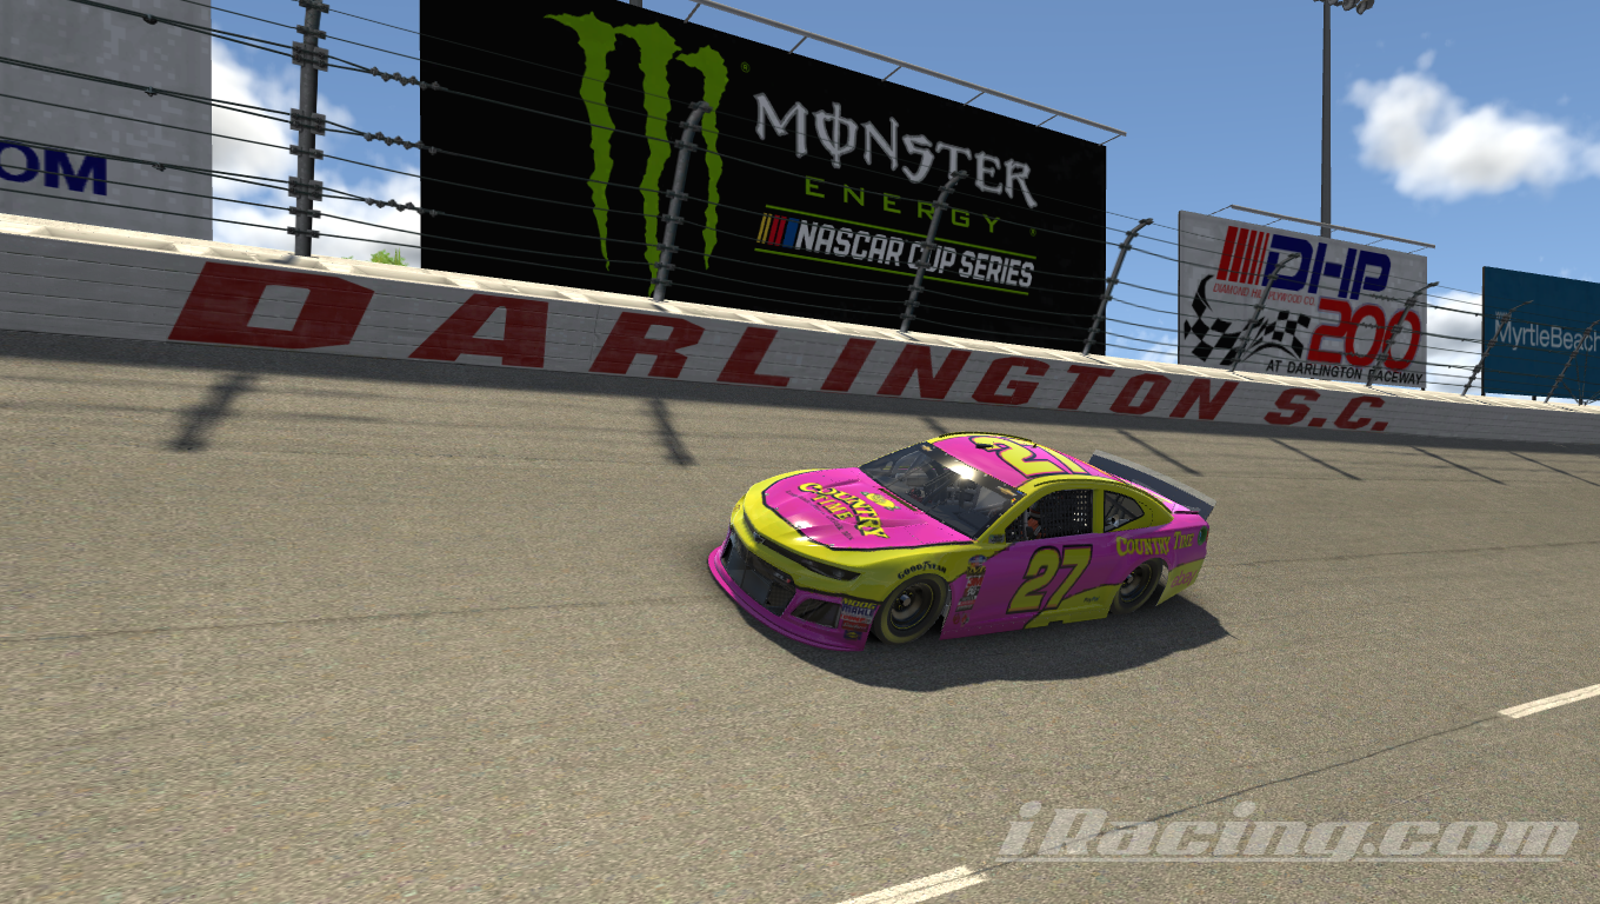 Team Oppo will race a throwback to Neil Bonnett's 1994 Country Time Lemonade Chevrolet at the virtual NASCAR throwback weekend at Darlington